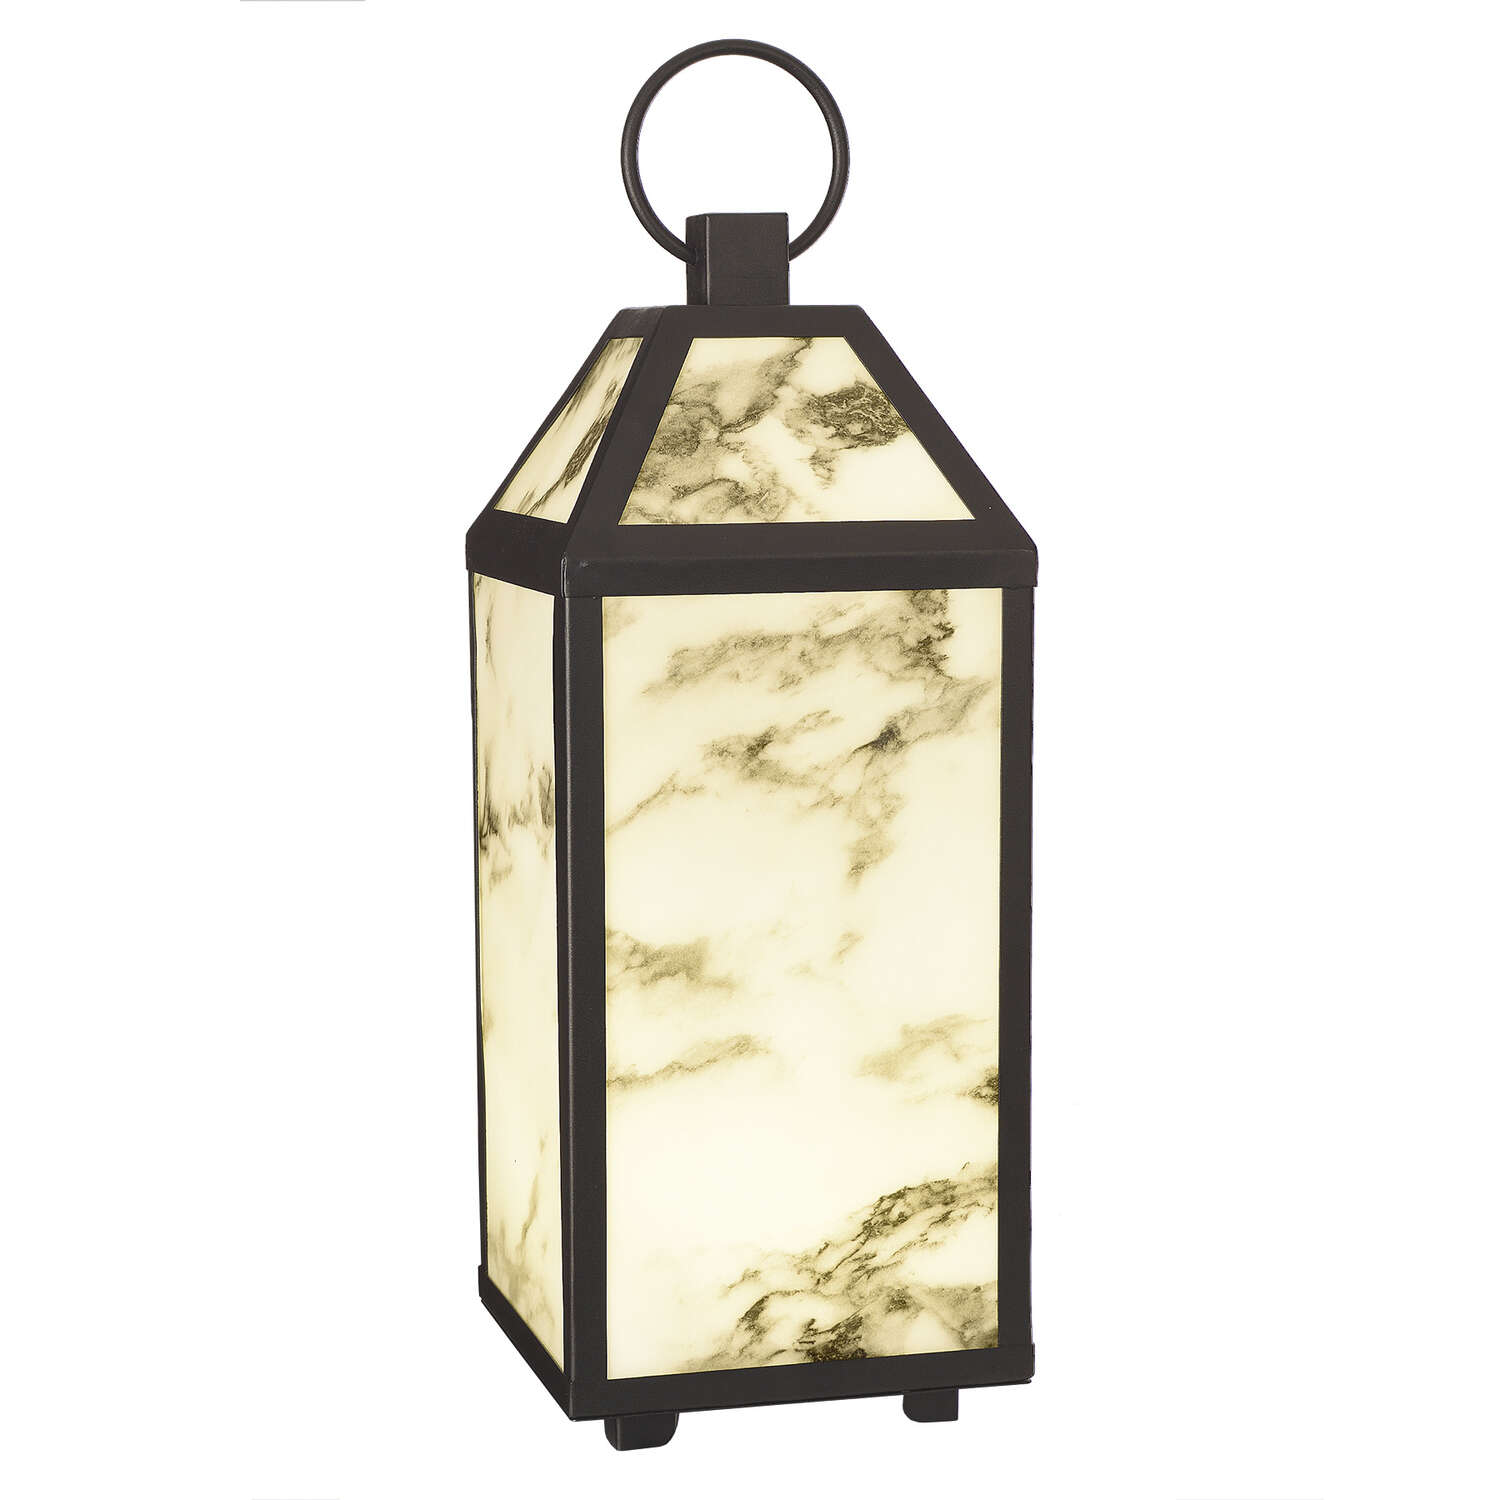 Paradise Lighting LED Plastic Flameless Lantern Black/White